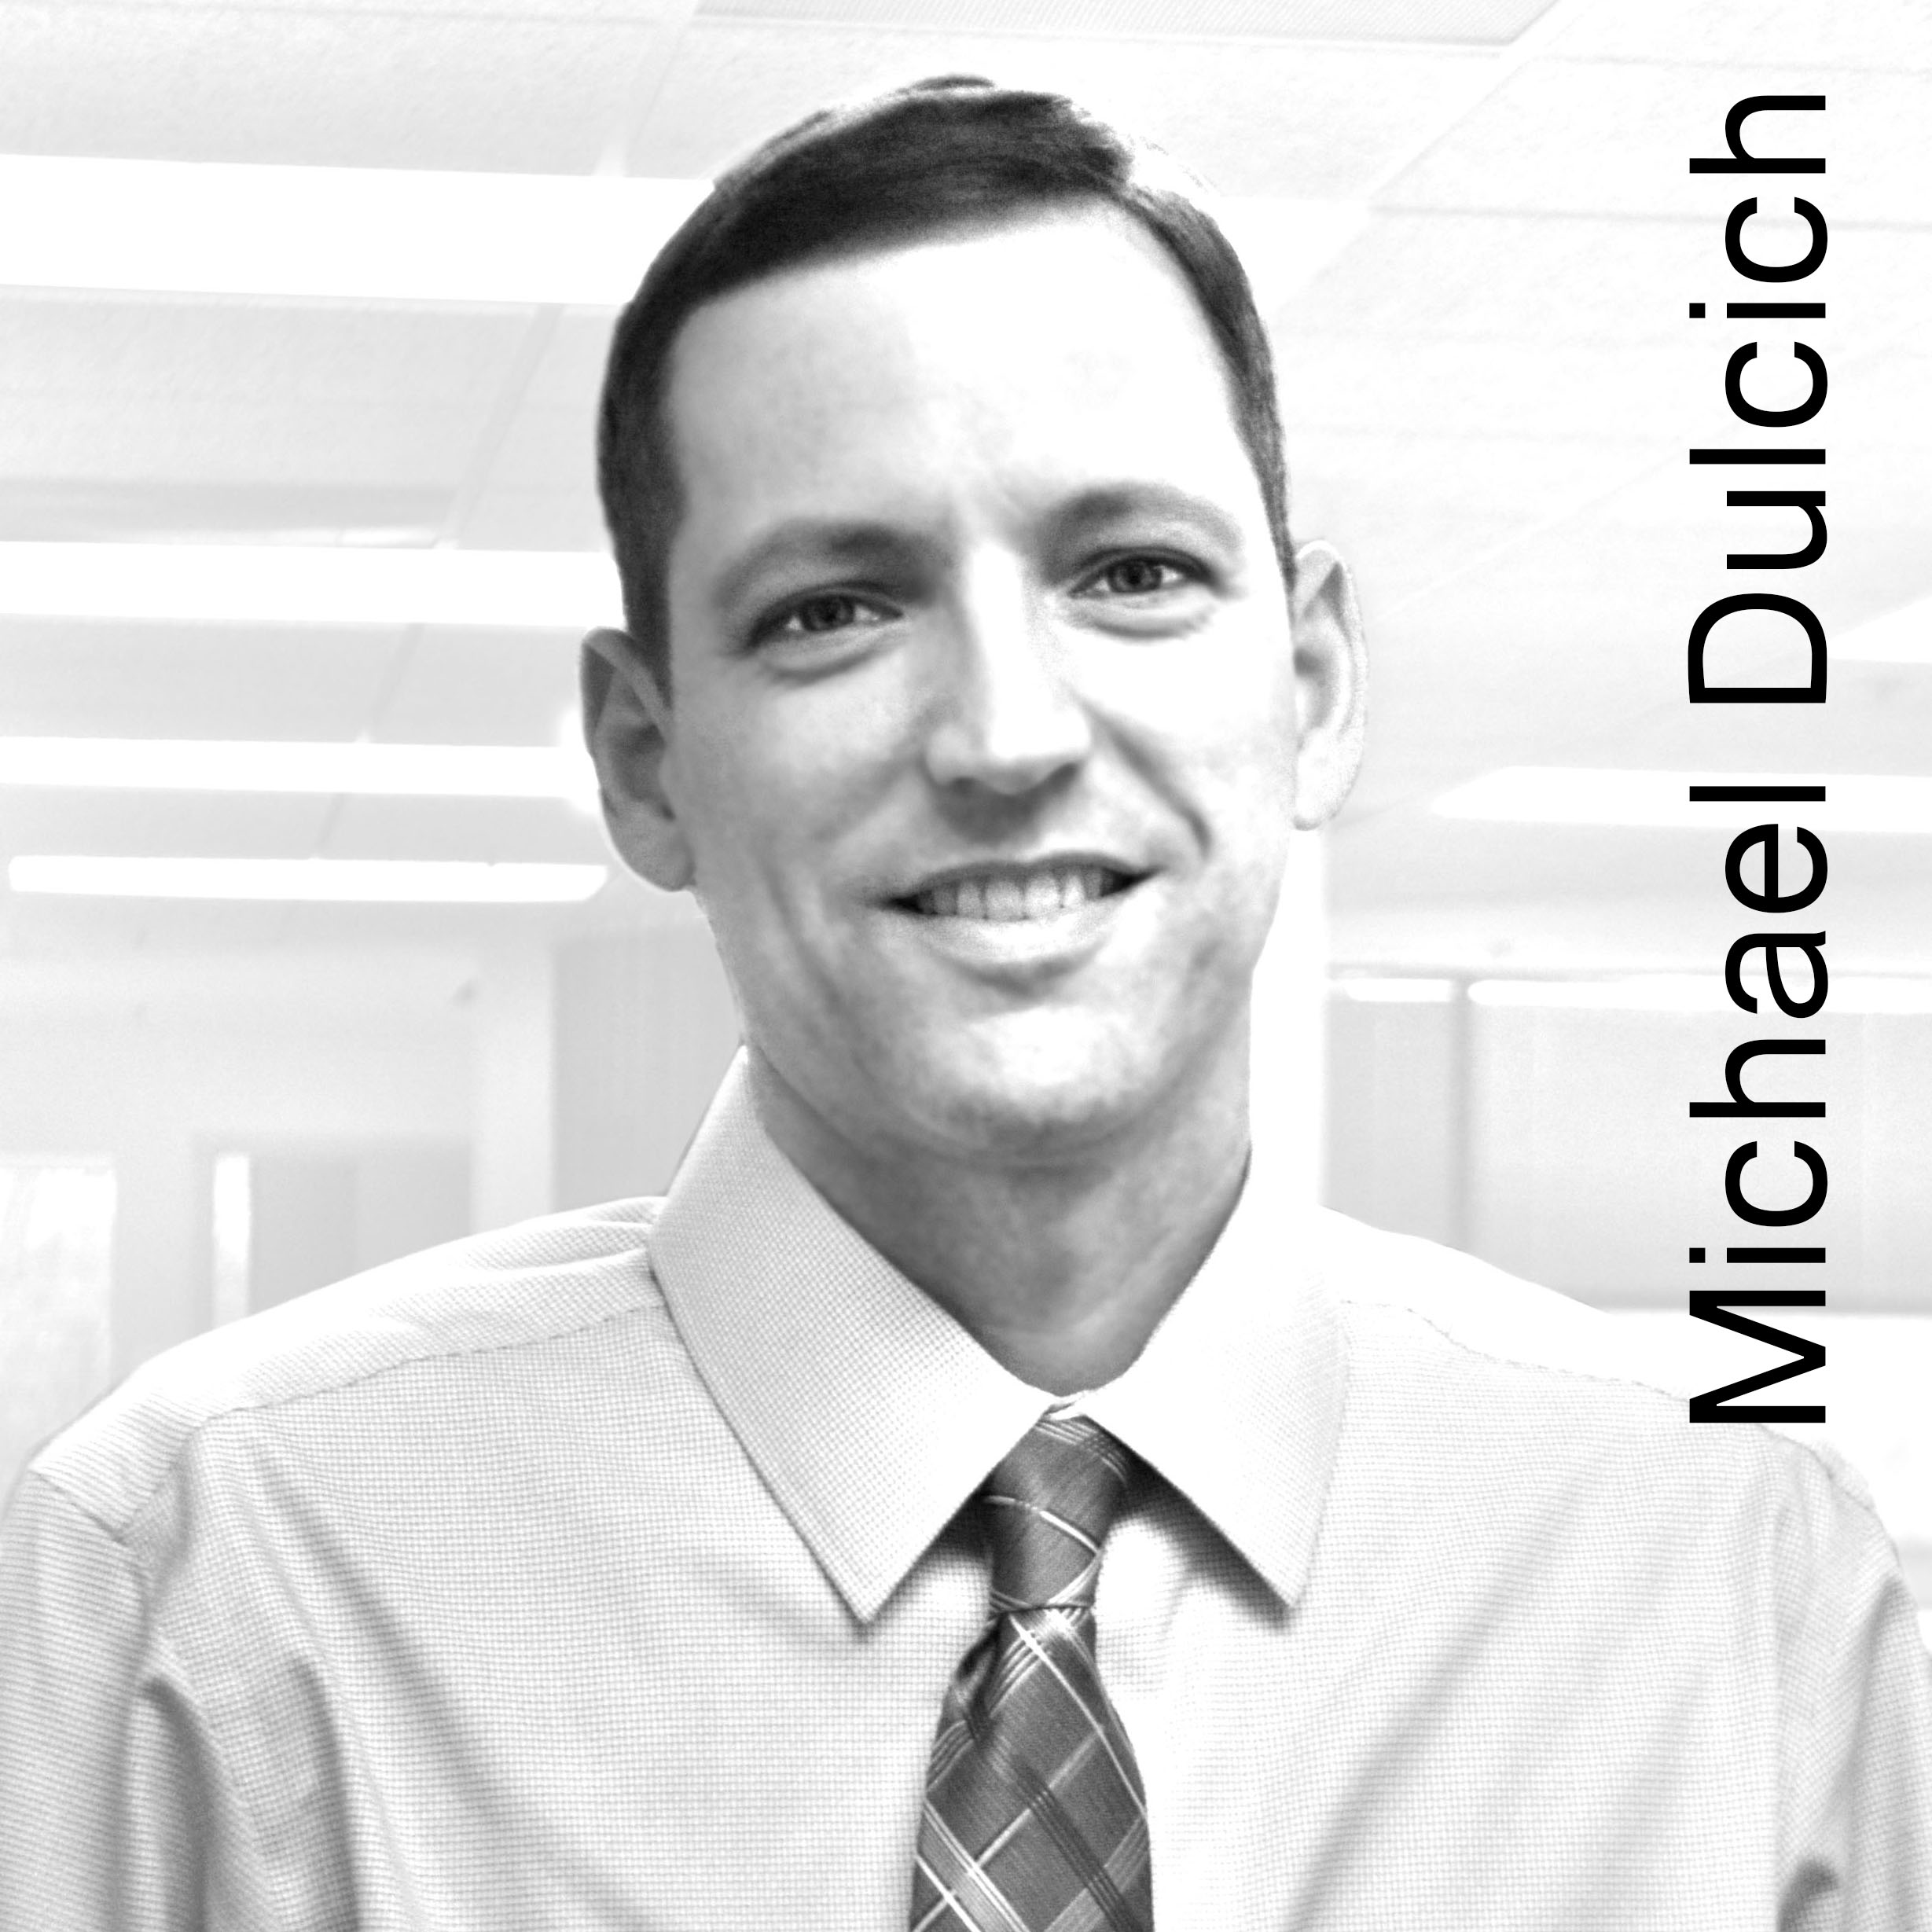 michael_dulcich_square_copy1.jpg